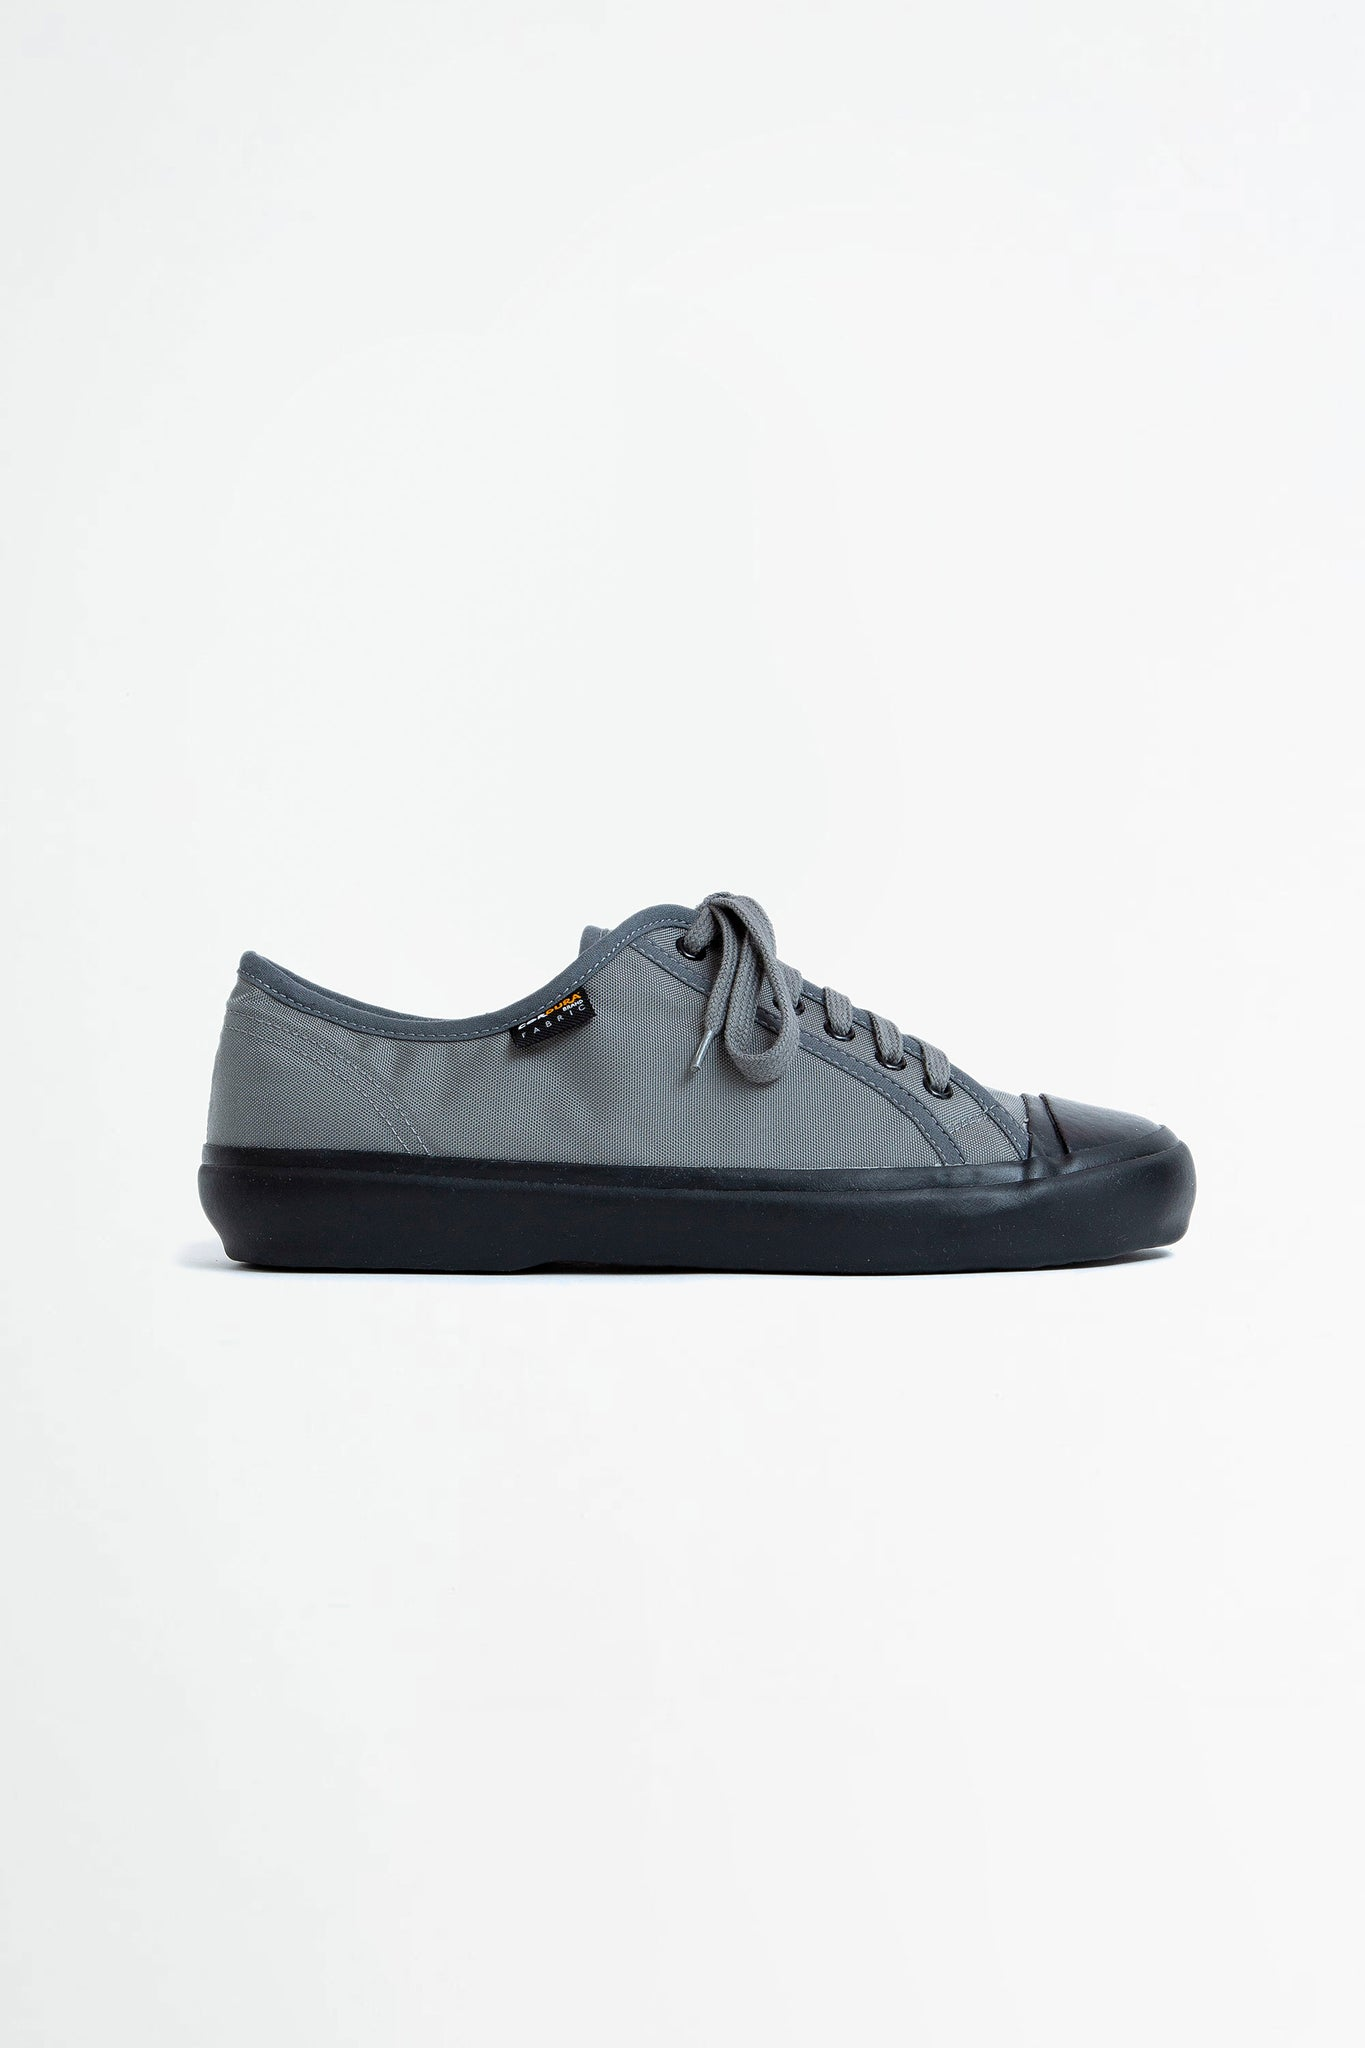 US navy military trainer grey/black sole